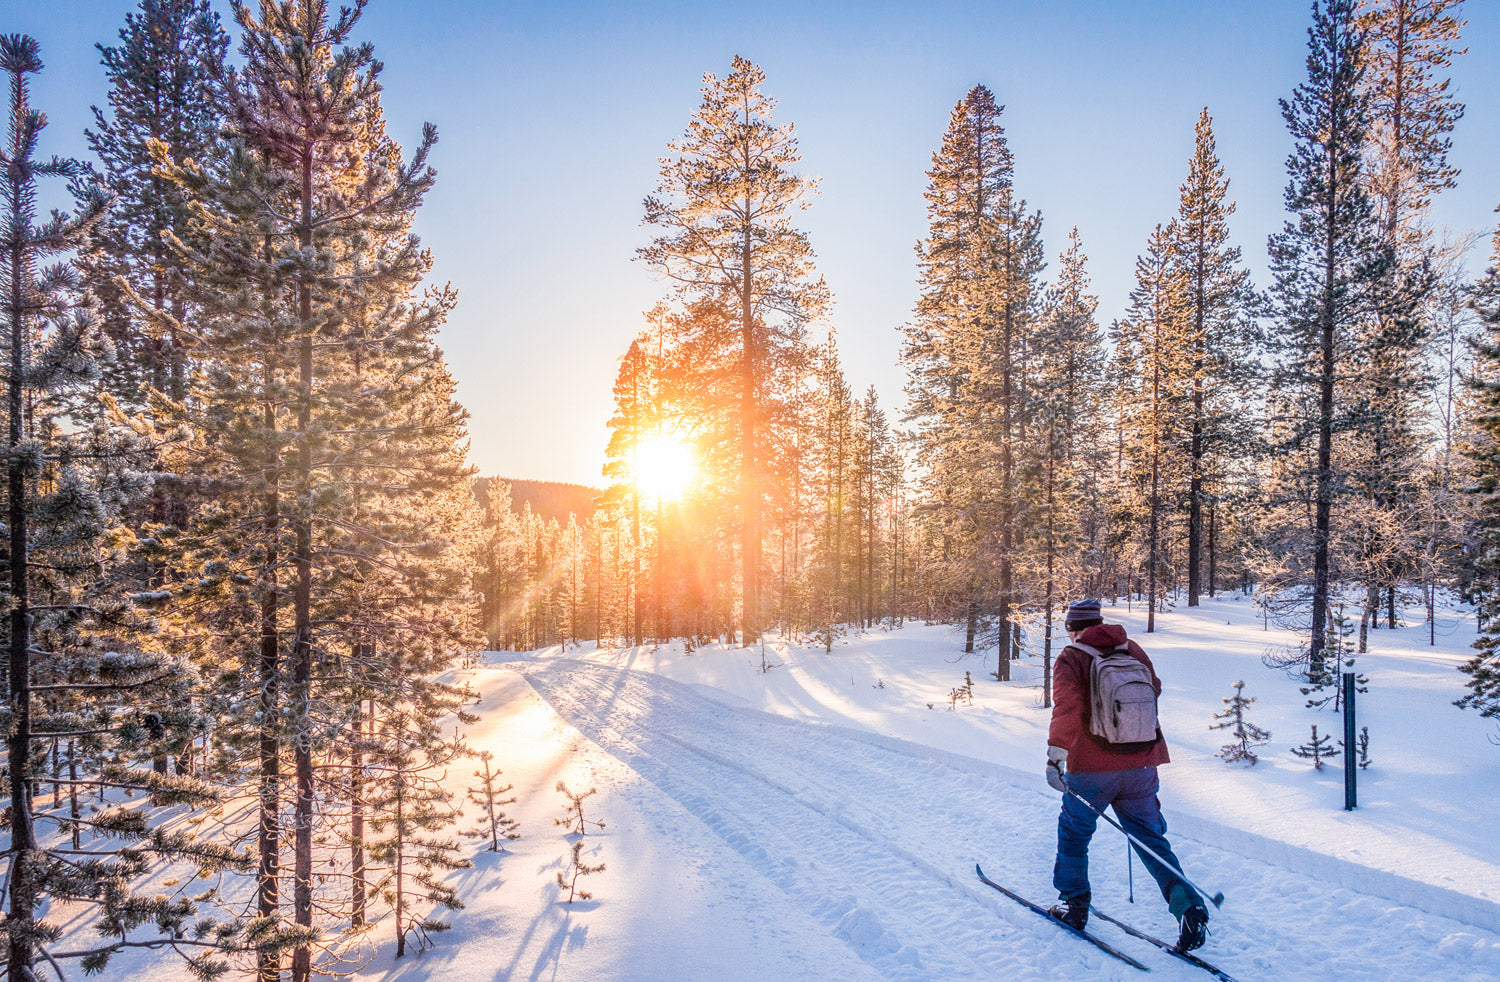 man going into the sunrise on nordic skis in a woodland nature setting